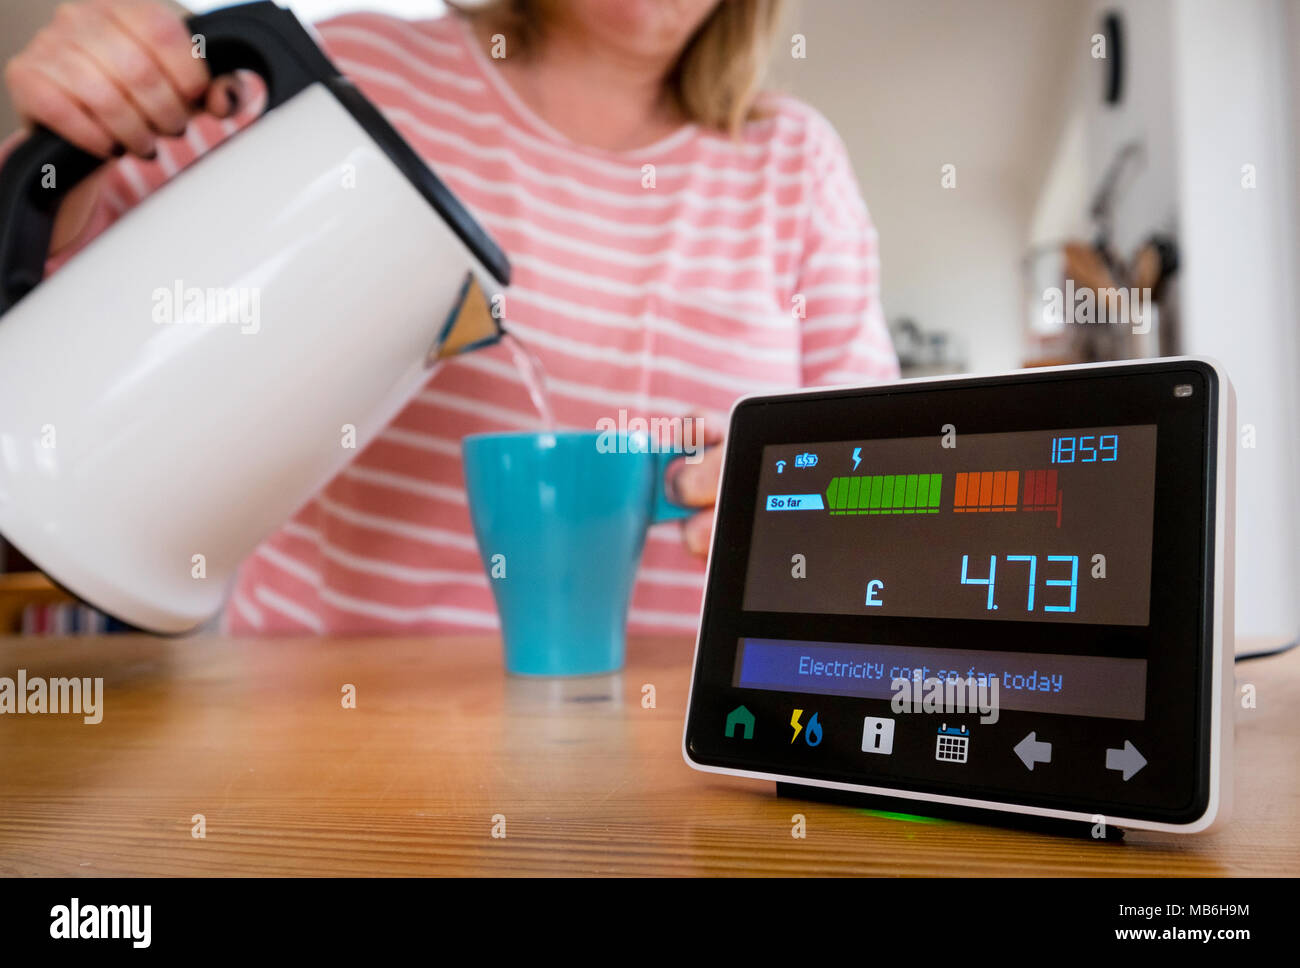 Energy Monitor in the kitchen of a UK home as a woman makes a cup of tea - Stock Image